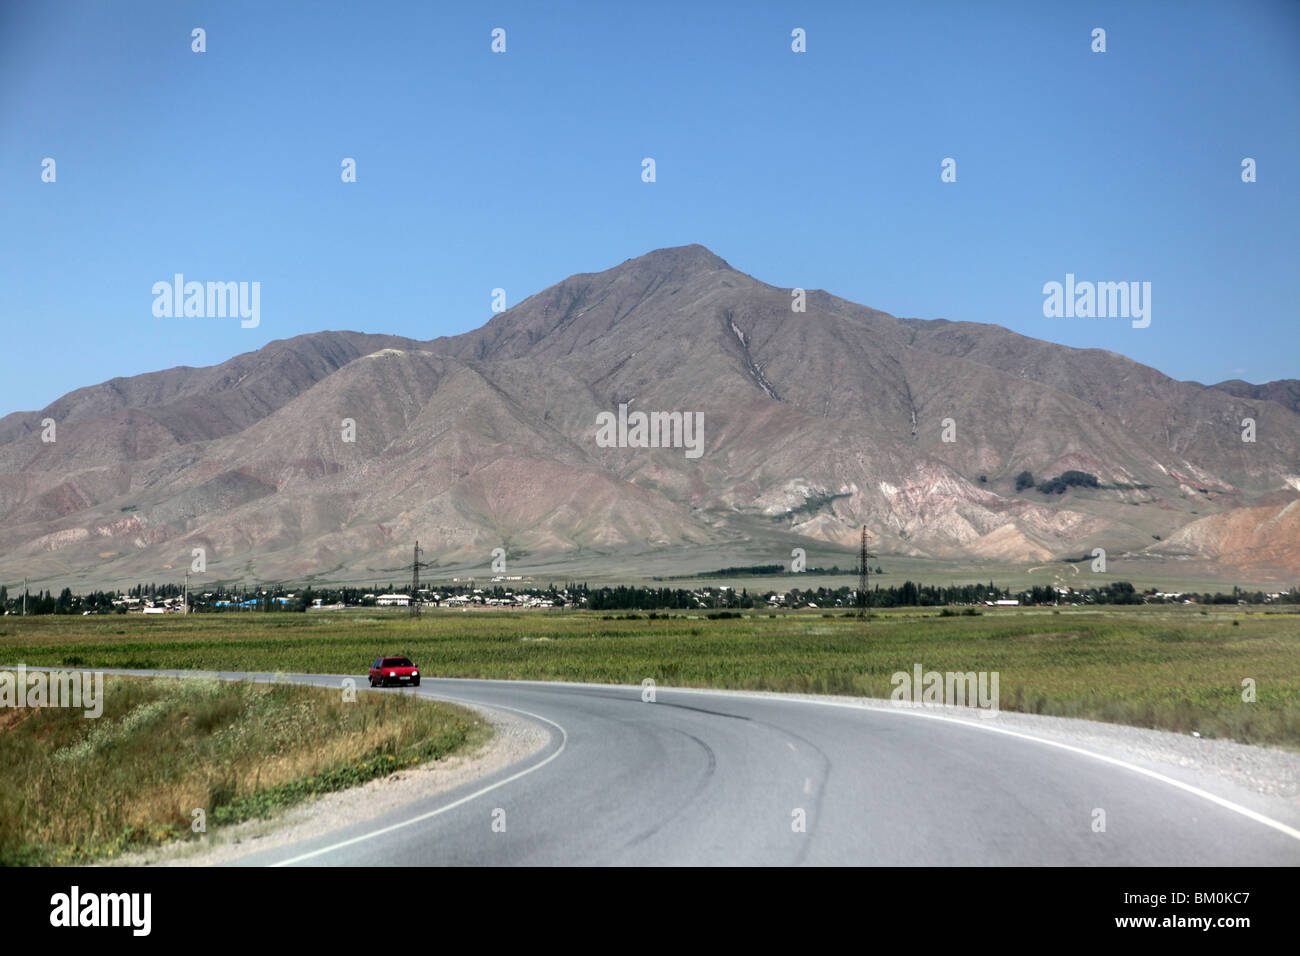 A paved road sweeps past mountains in Kyrgystan, Central Asia. - Stock Image